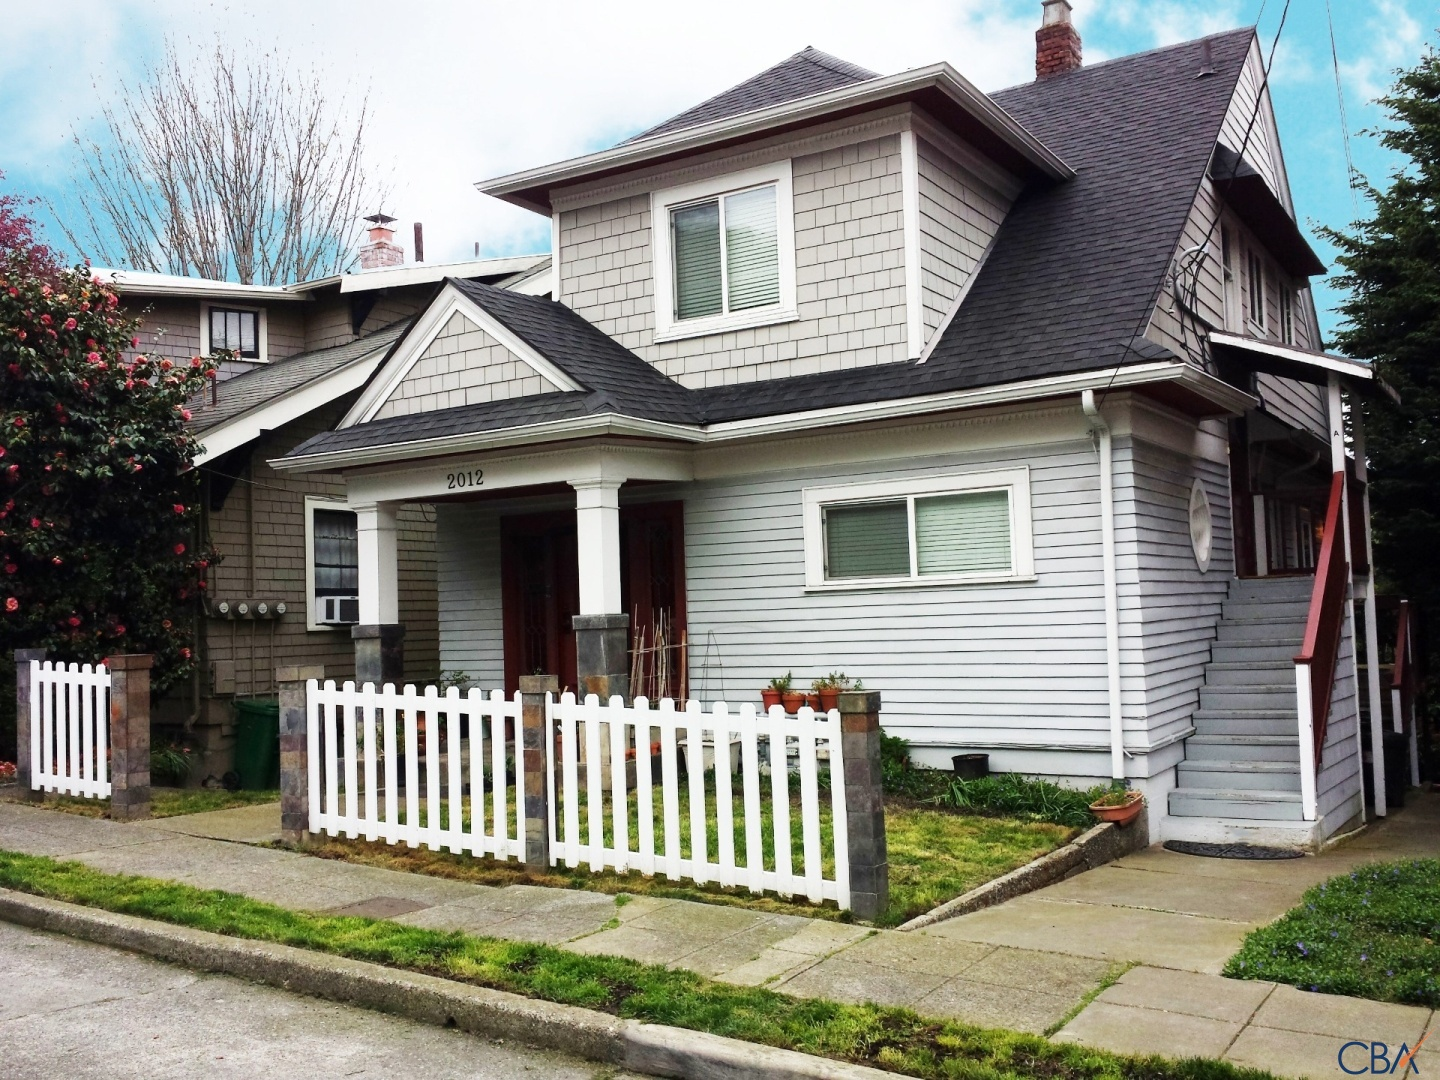 Primary Listing Image for MLS#: 587026